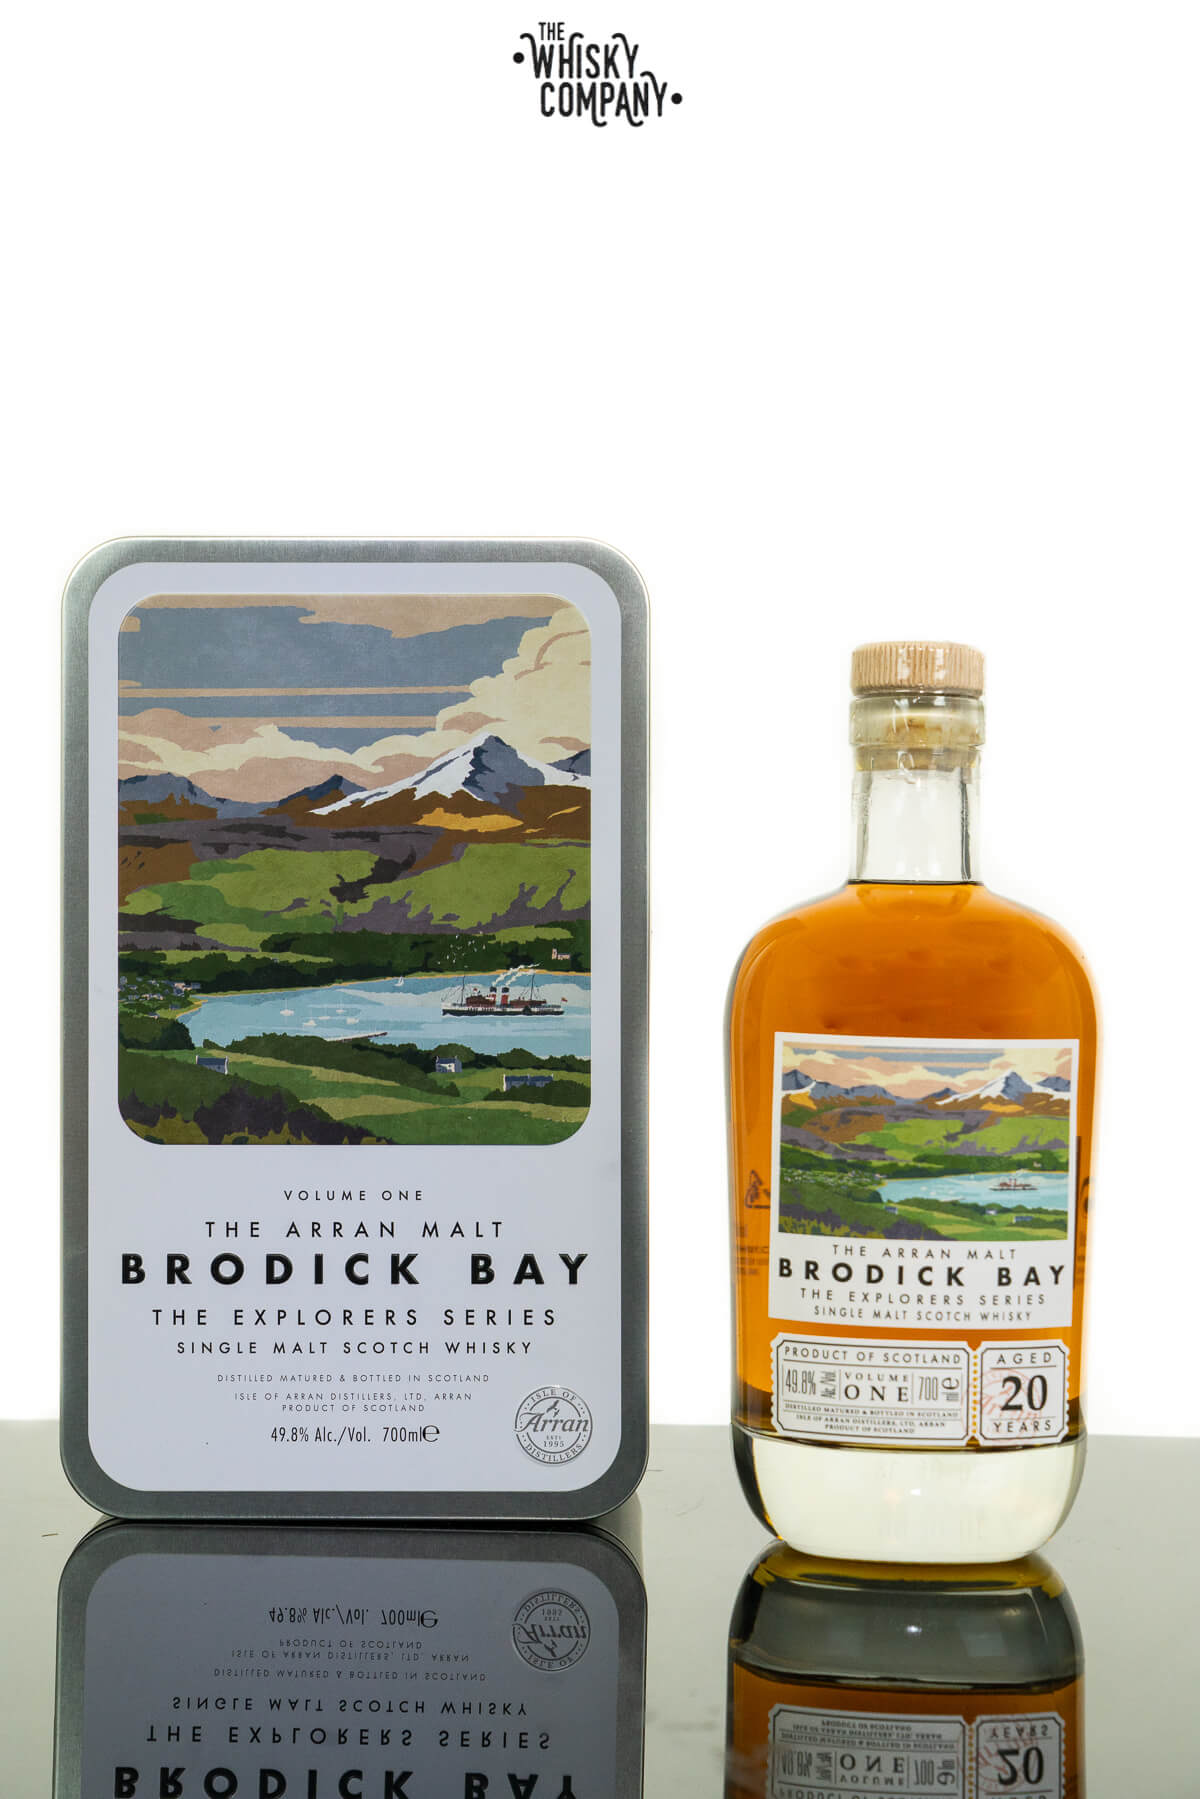 Arran Aged 20 Years Brodick Bay 'The Explorer Series' Single Malt Scotch Whisky (700ml)